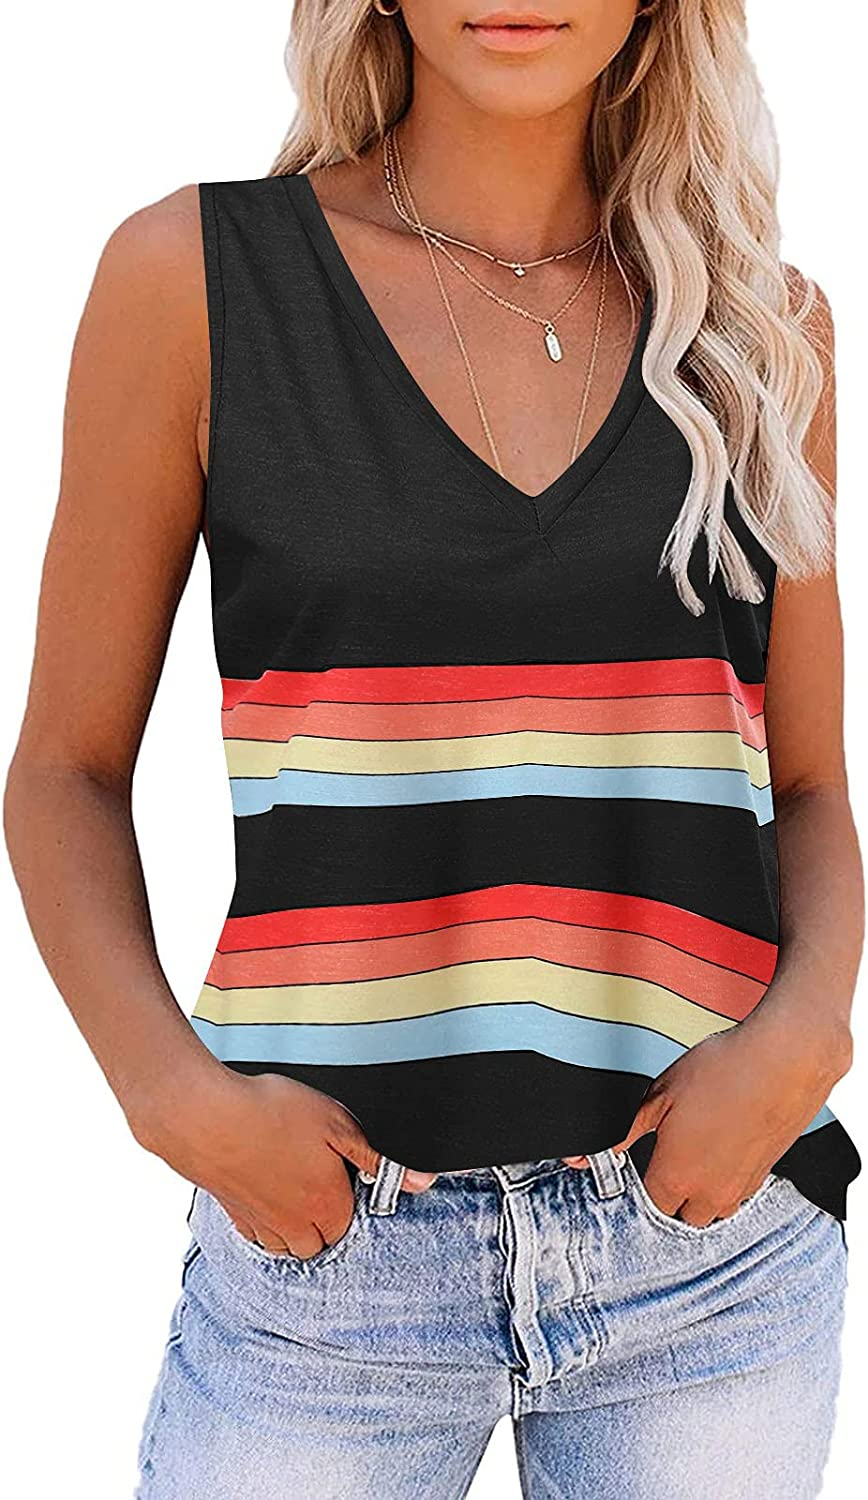 Cute Summer Tops for Women Cropped,Women Tank Tops Loose Fit Sleeveless Casual Summer Tops Funny Printed T Shirt